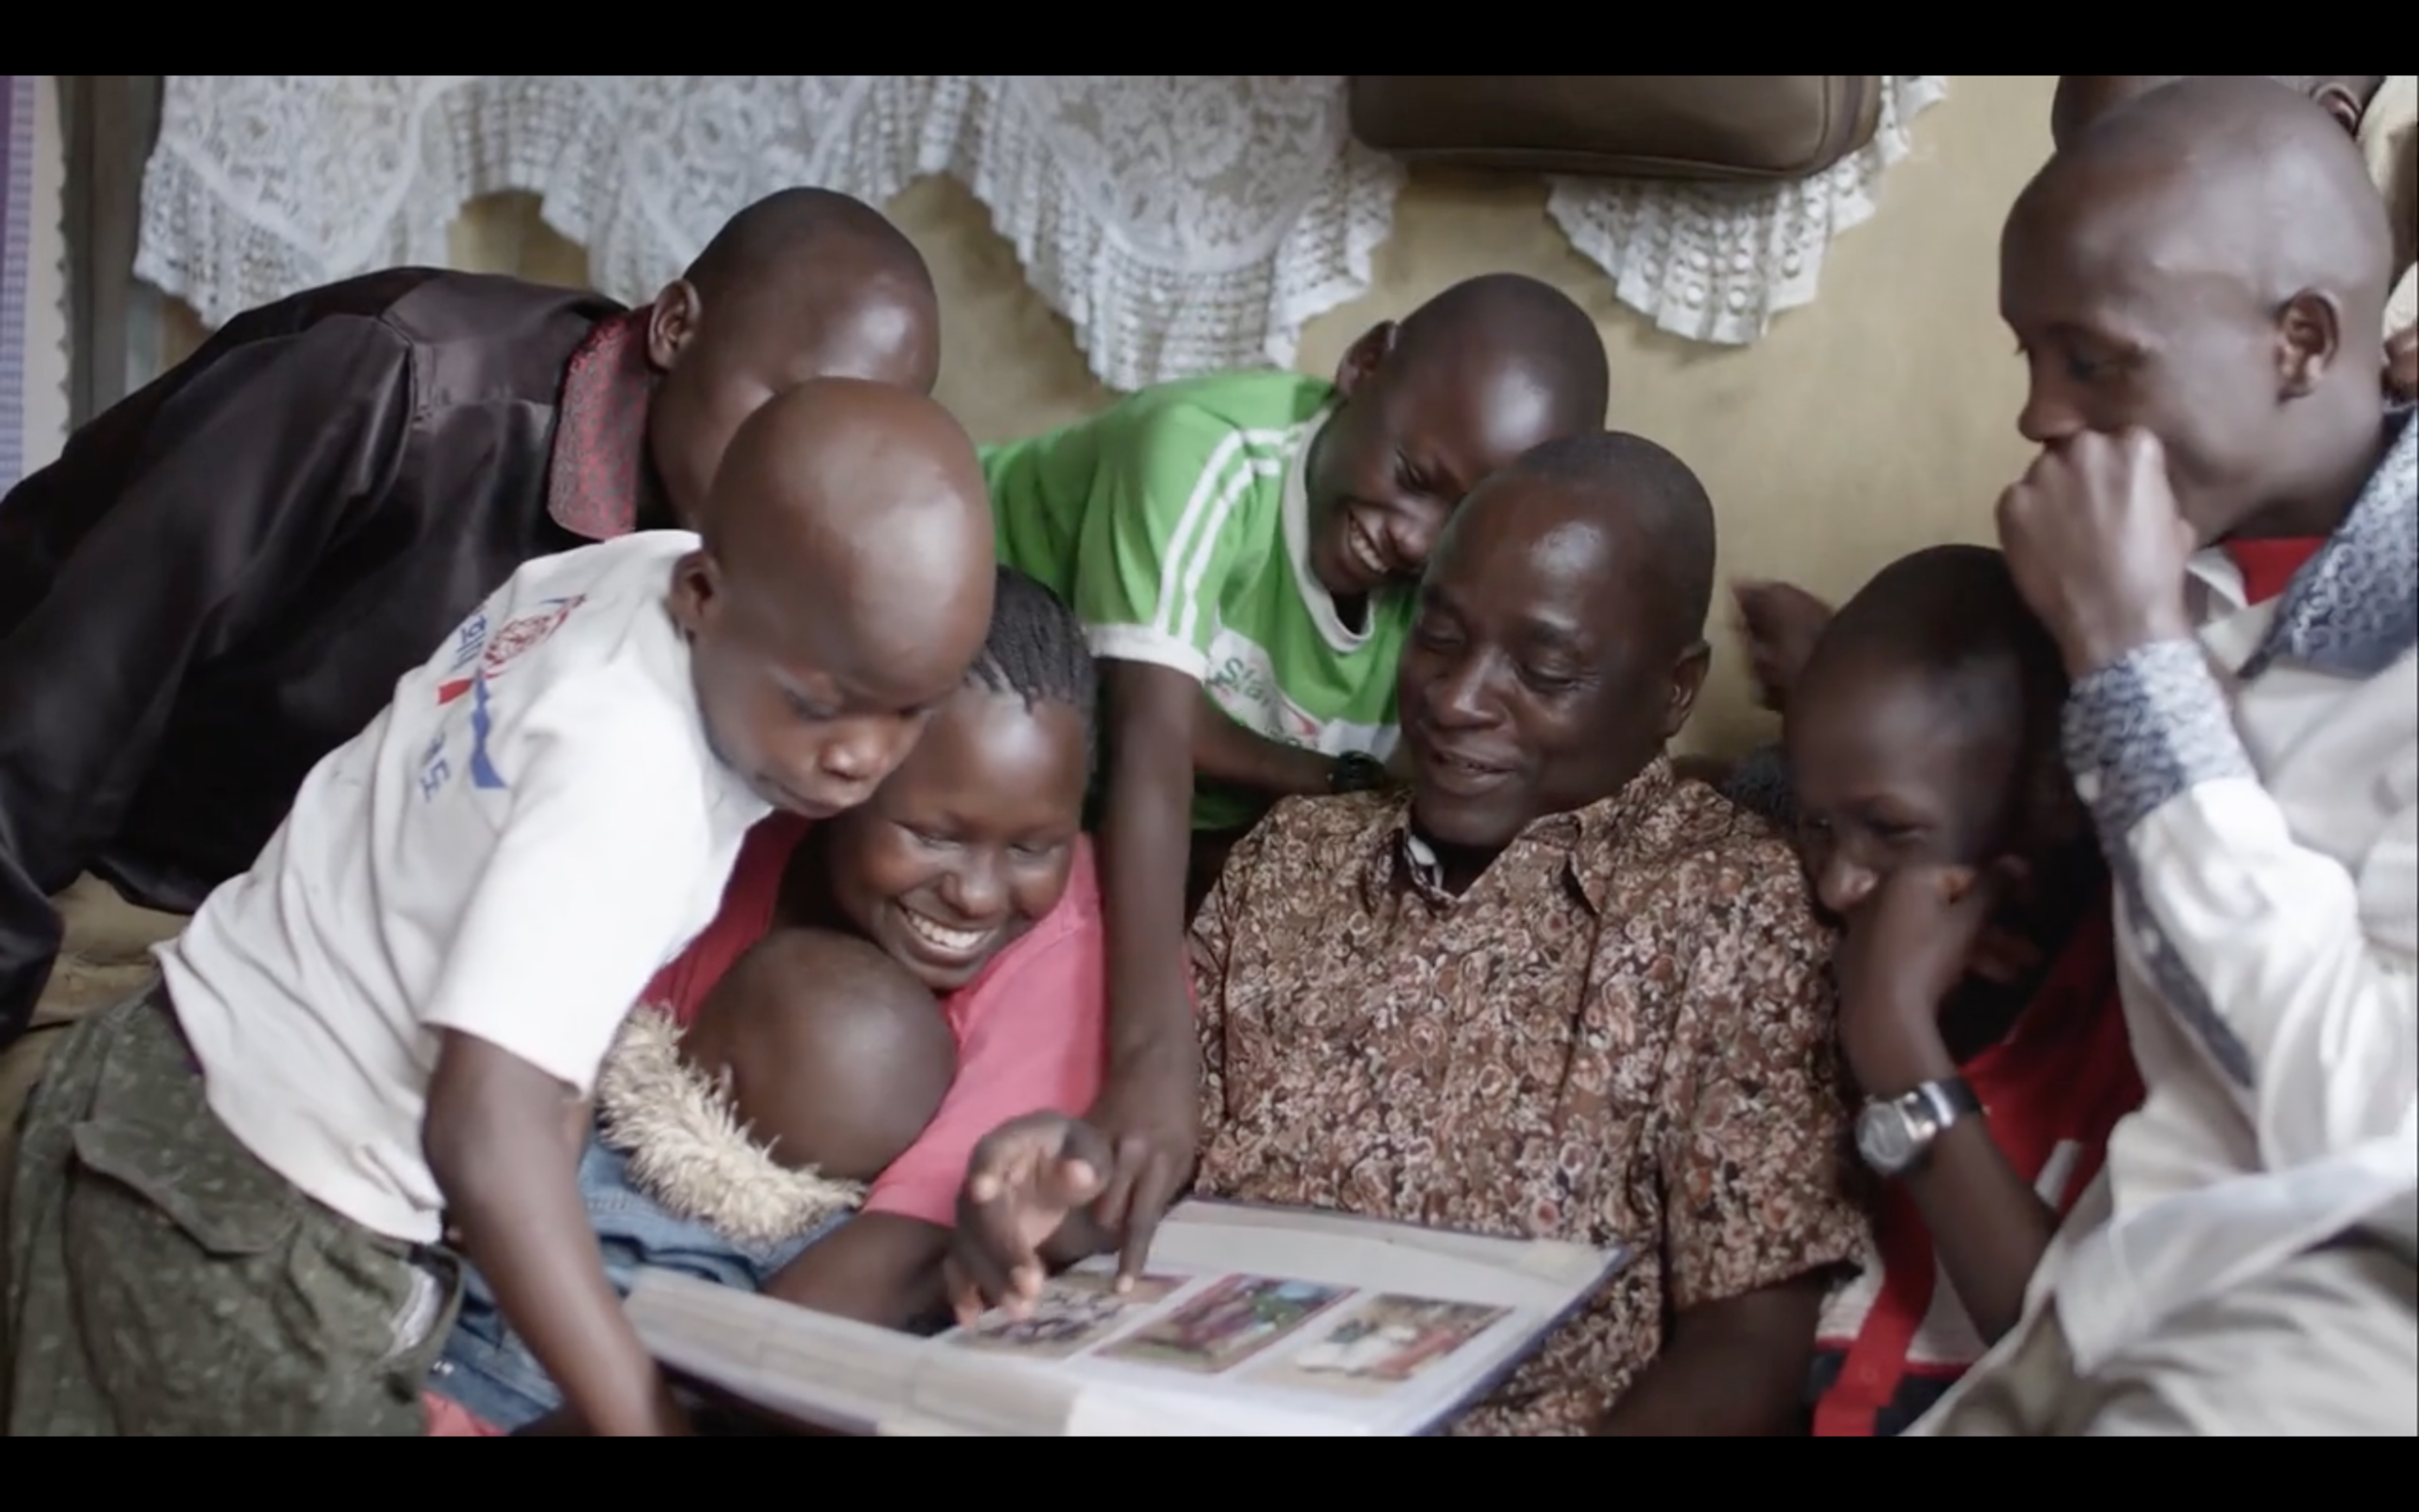 Matanda and his wife, Stella, left the seven children they cared for behind when they were killed in a car accident.